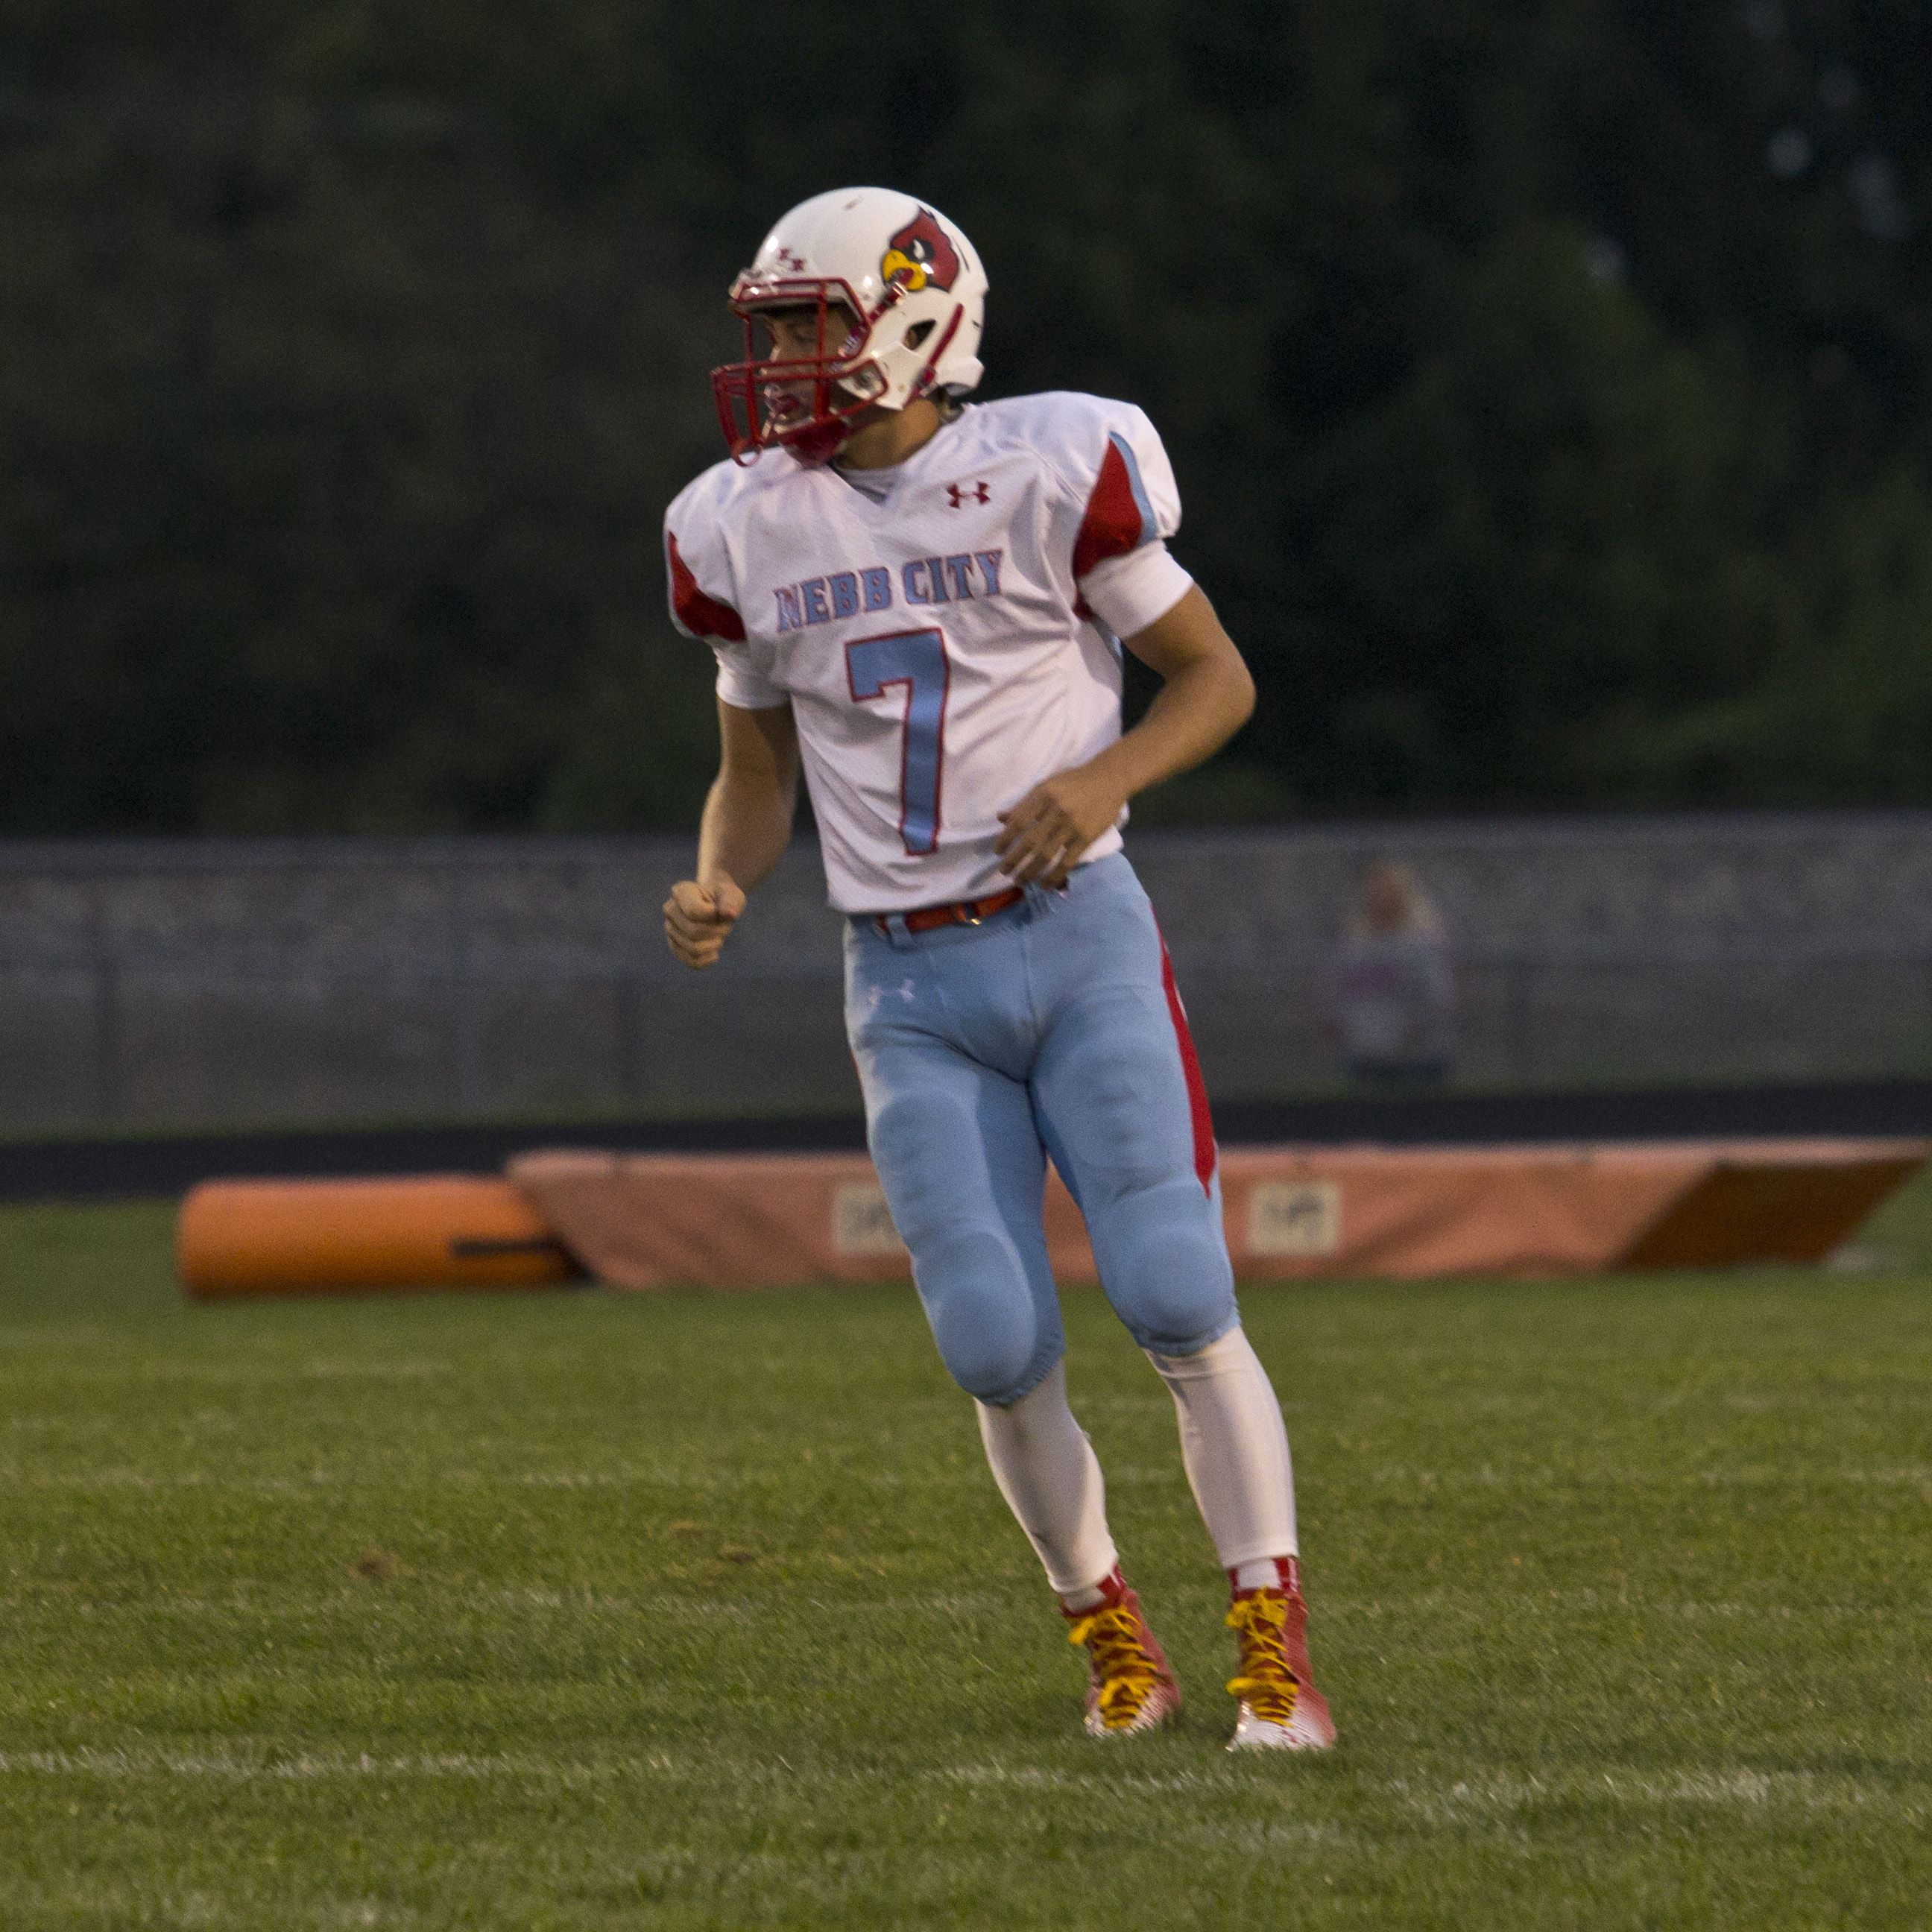 Webb City quarterback Tyson Roderique ran for xx TDs and threw xx TDs in a xx-xx defeat of Har-Ber (Springdale, Ark.) on Friday. (Photo: Joshua Campbell / for the Springfield News-Leader)